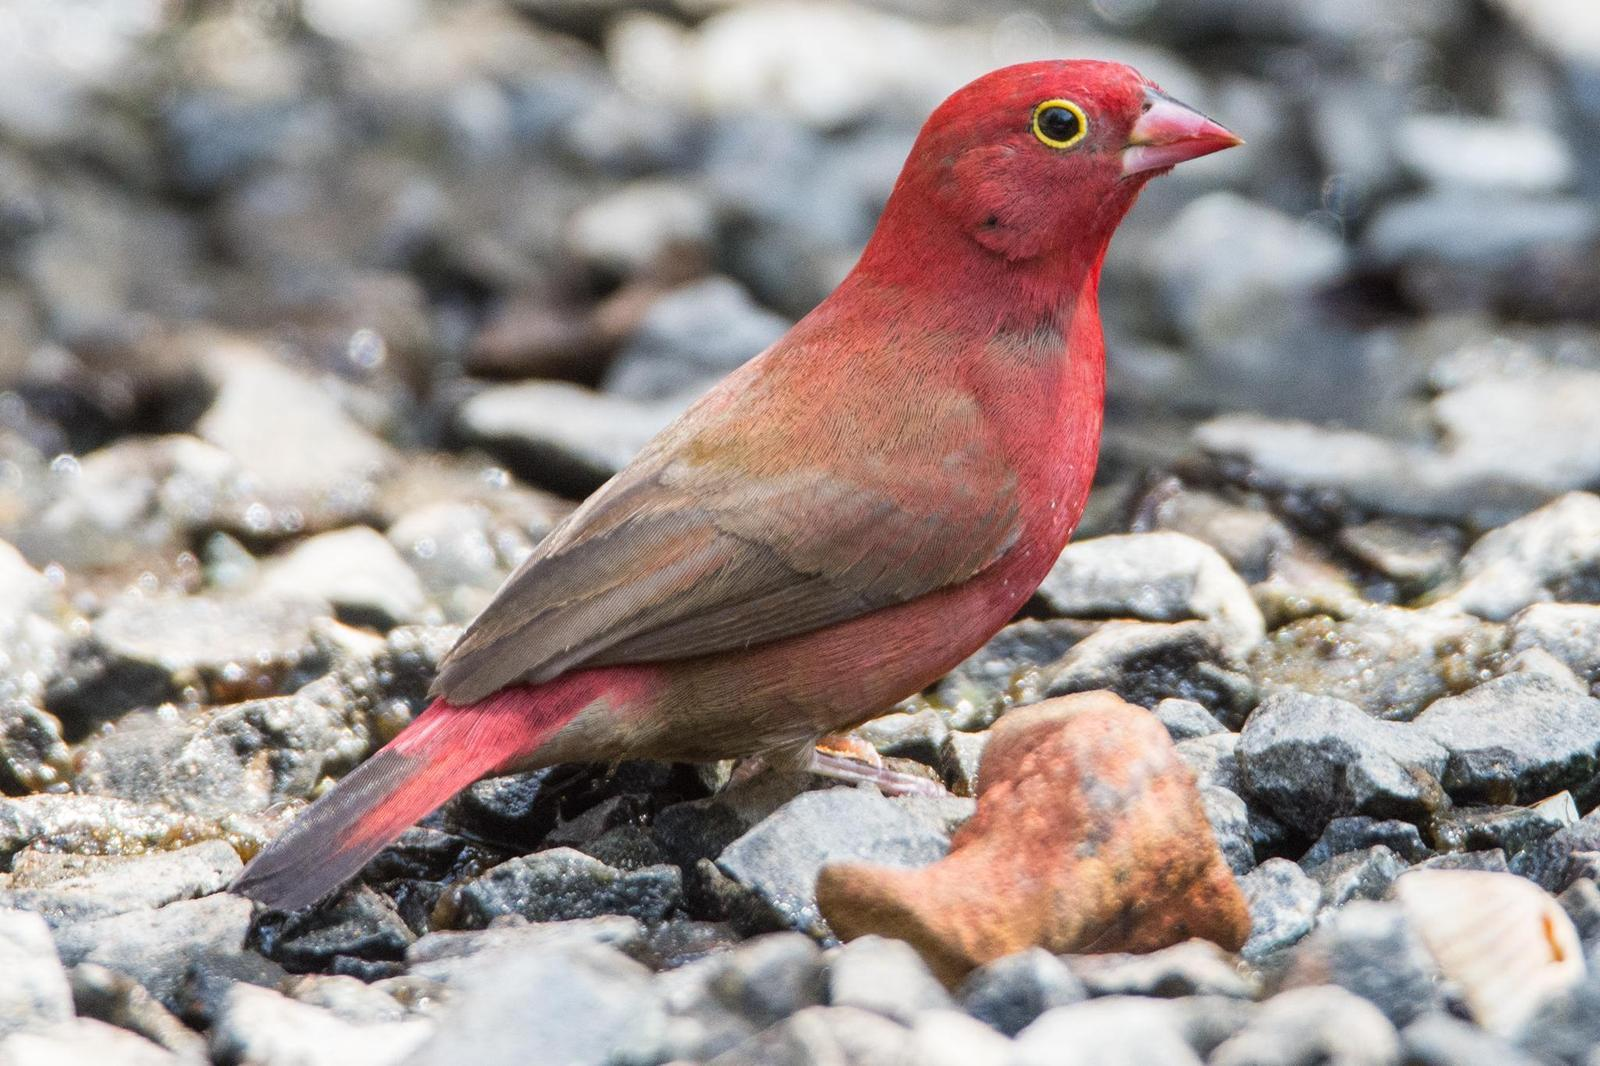 Red-billed Firefinch Photo by Rob Garner